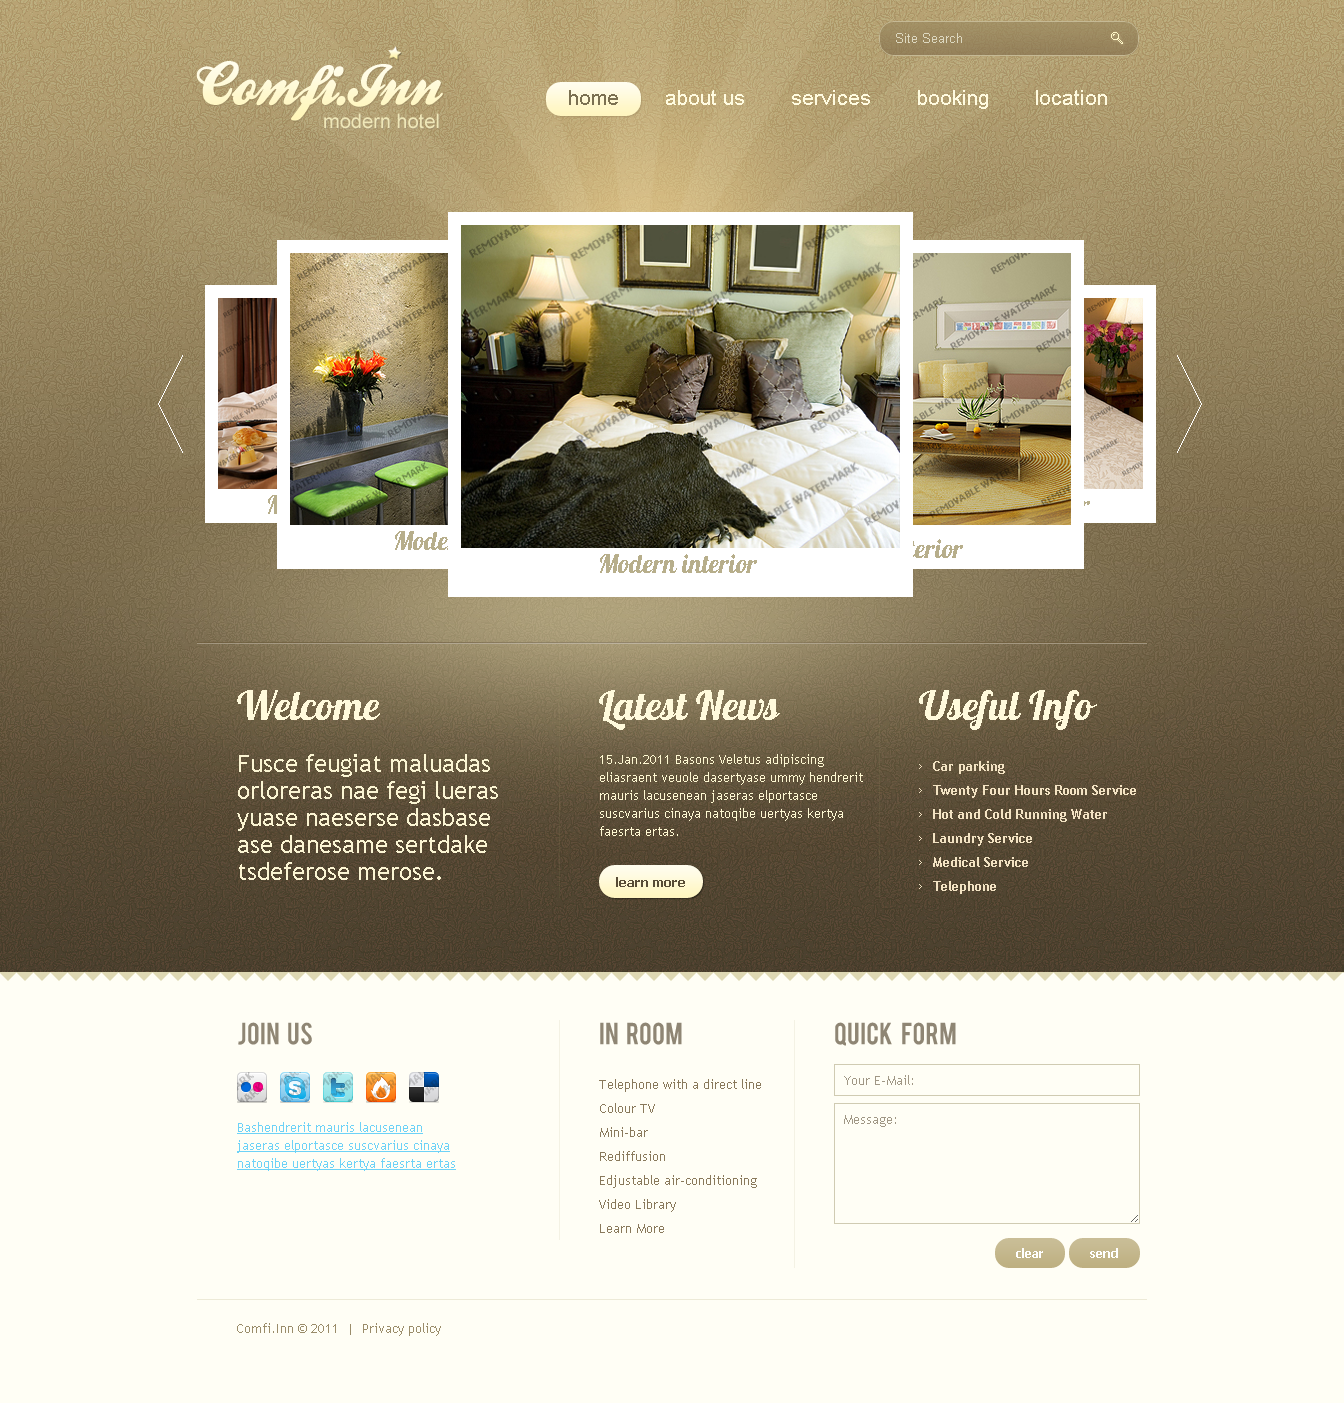 Website Design Ideas fashion clothing website designs ideas 14 Motel Accommodation Hotel Web Design Idea 05png 1344 Website Design Ideas